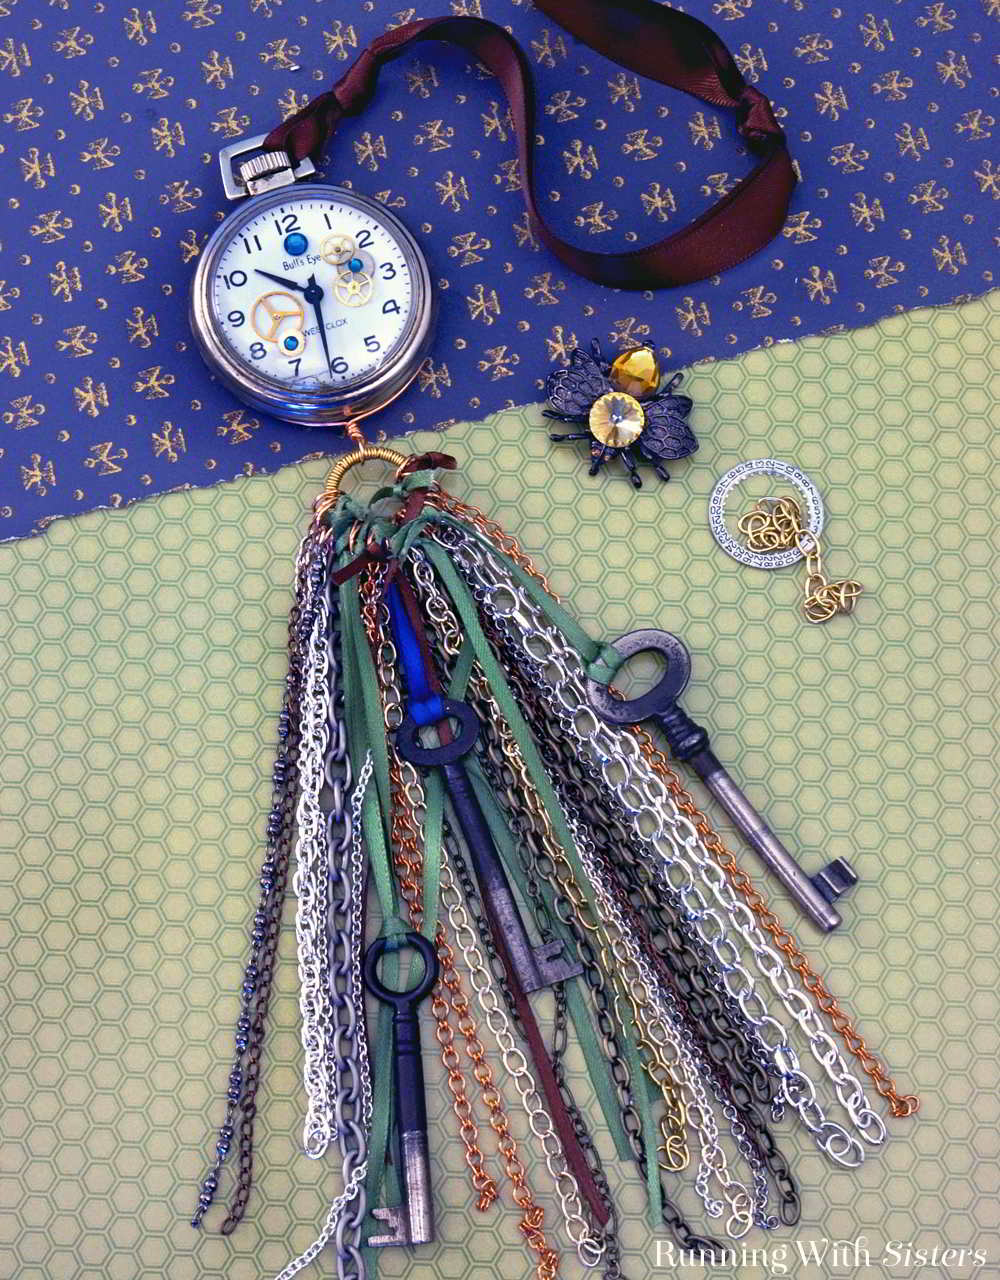 Turn a flea market find into a Steampunk Pocket Watch Tassel with chains, antique skeleton keys, and watch gears. We'll tell you how!